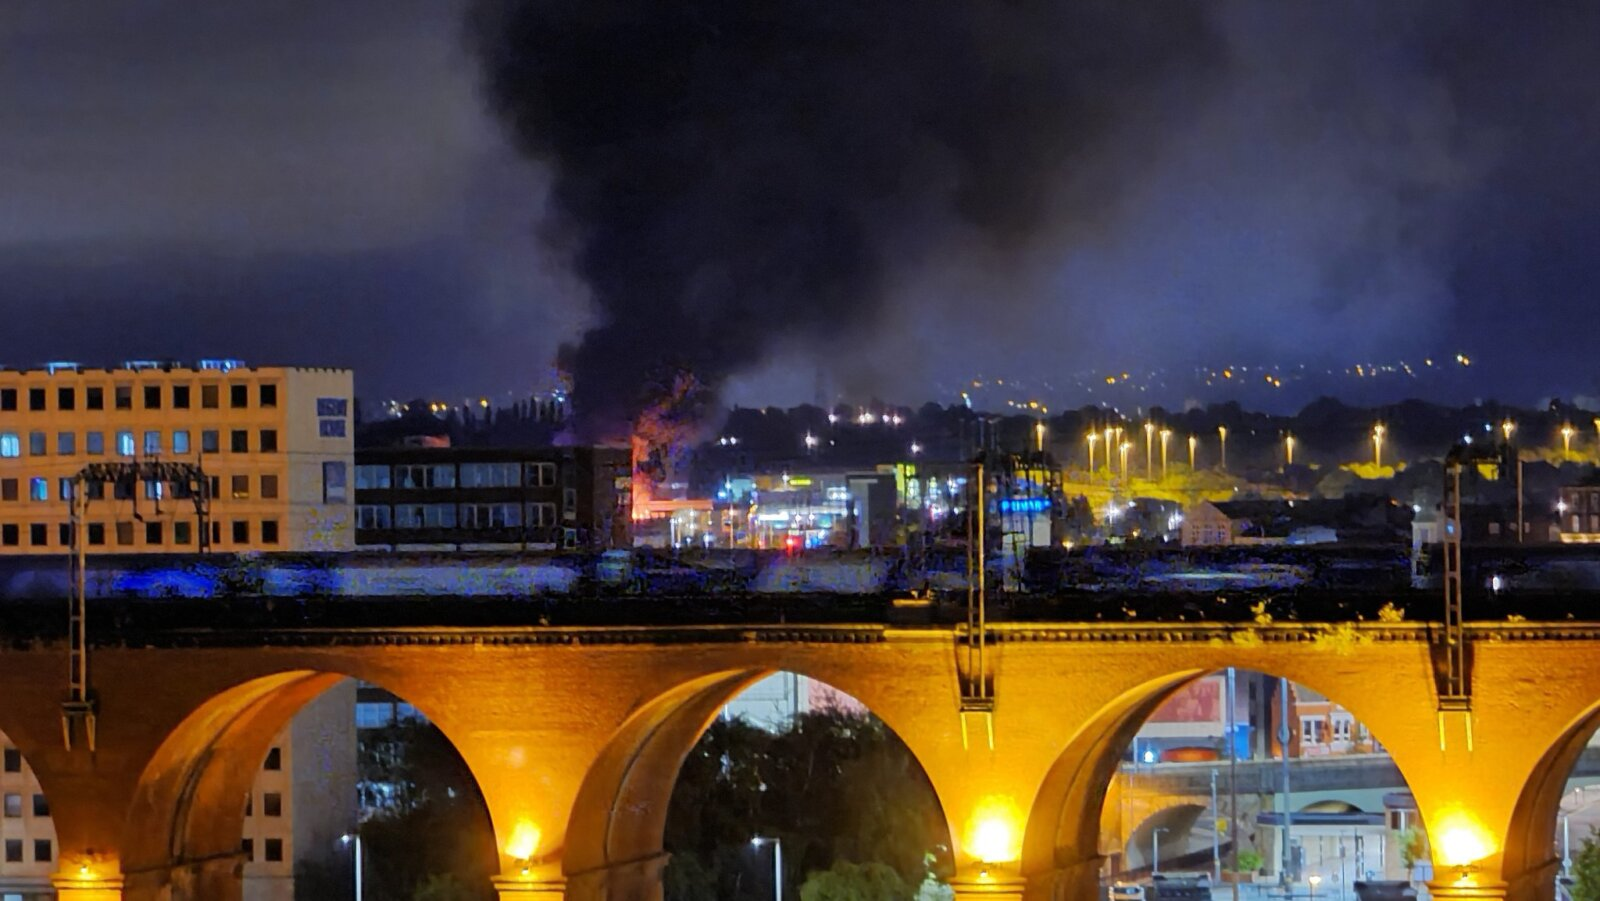 Greater Manchester Police treating fire at car dealership in Stockport as arson, The Manc